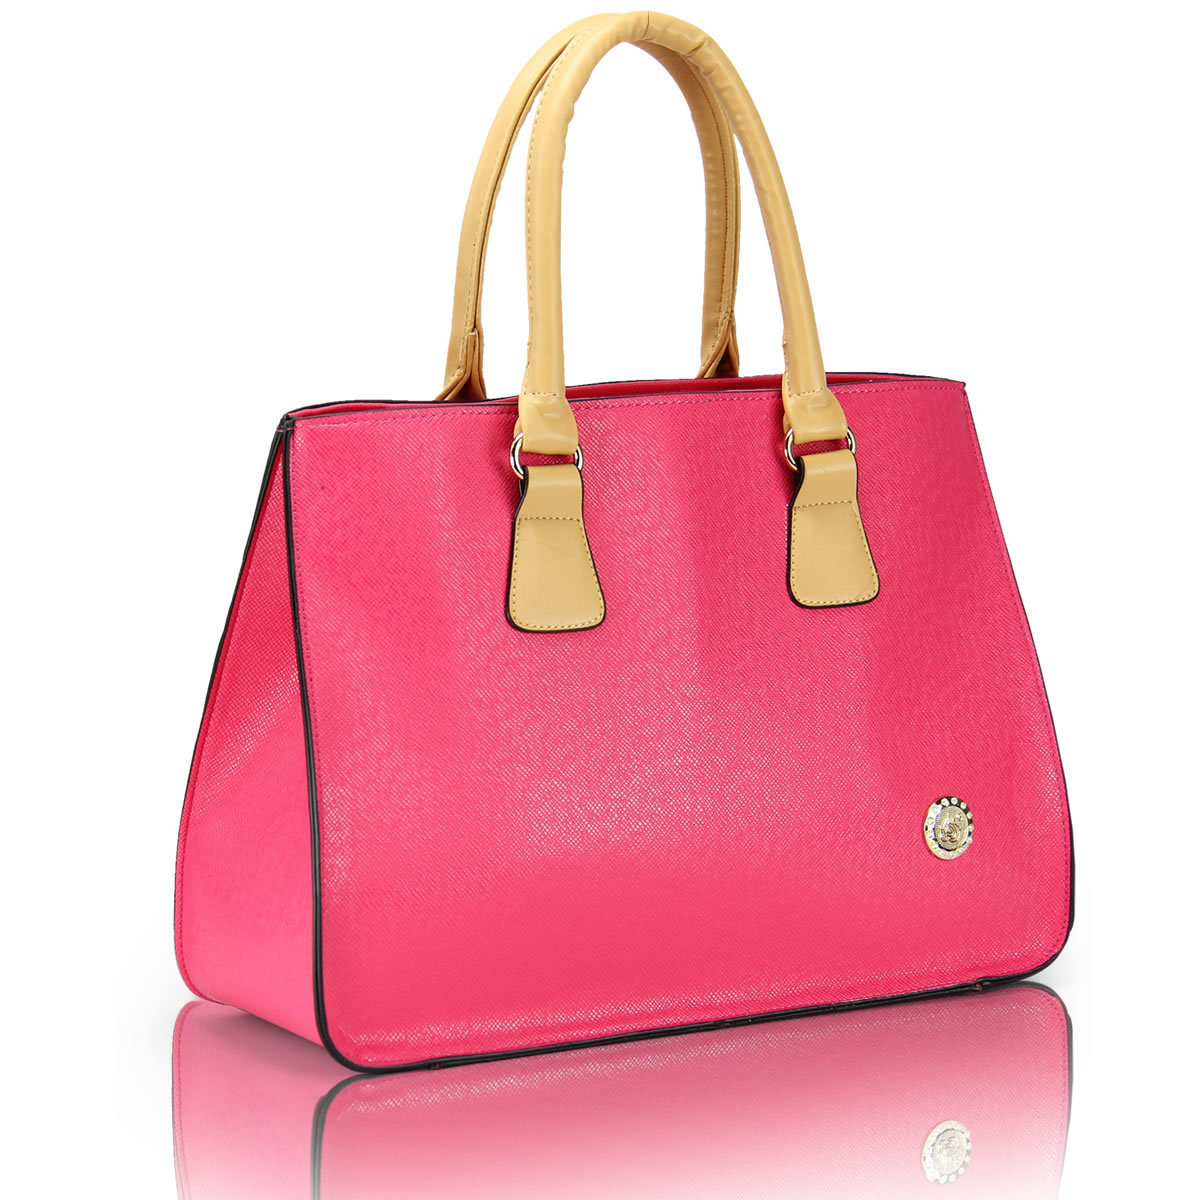 2013 spring female bag big fashion work bag business casual women's color block handbag